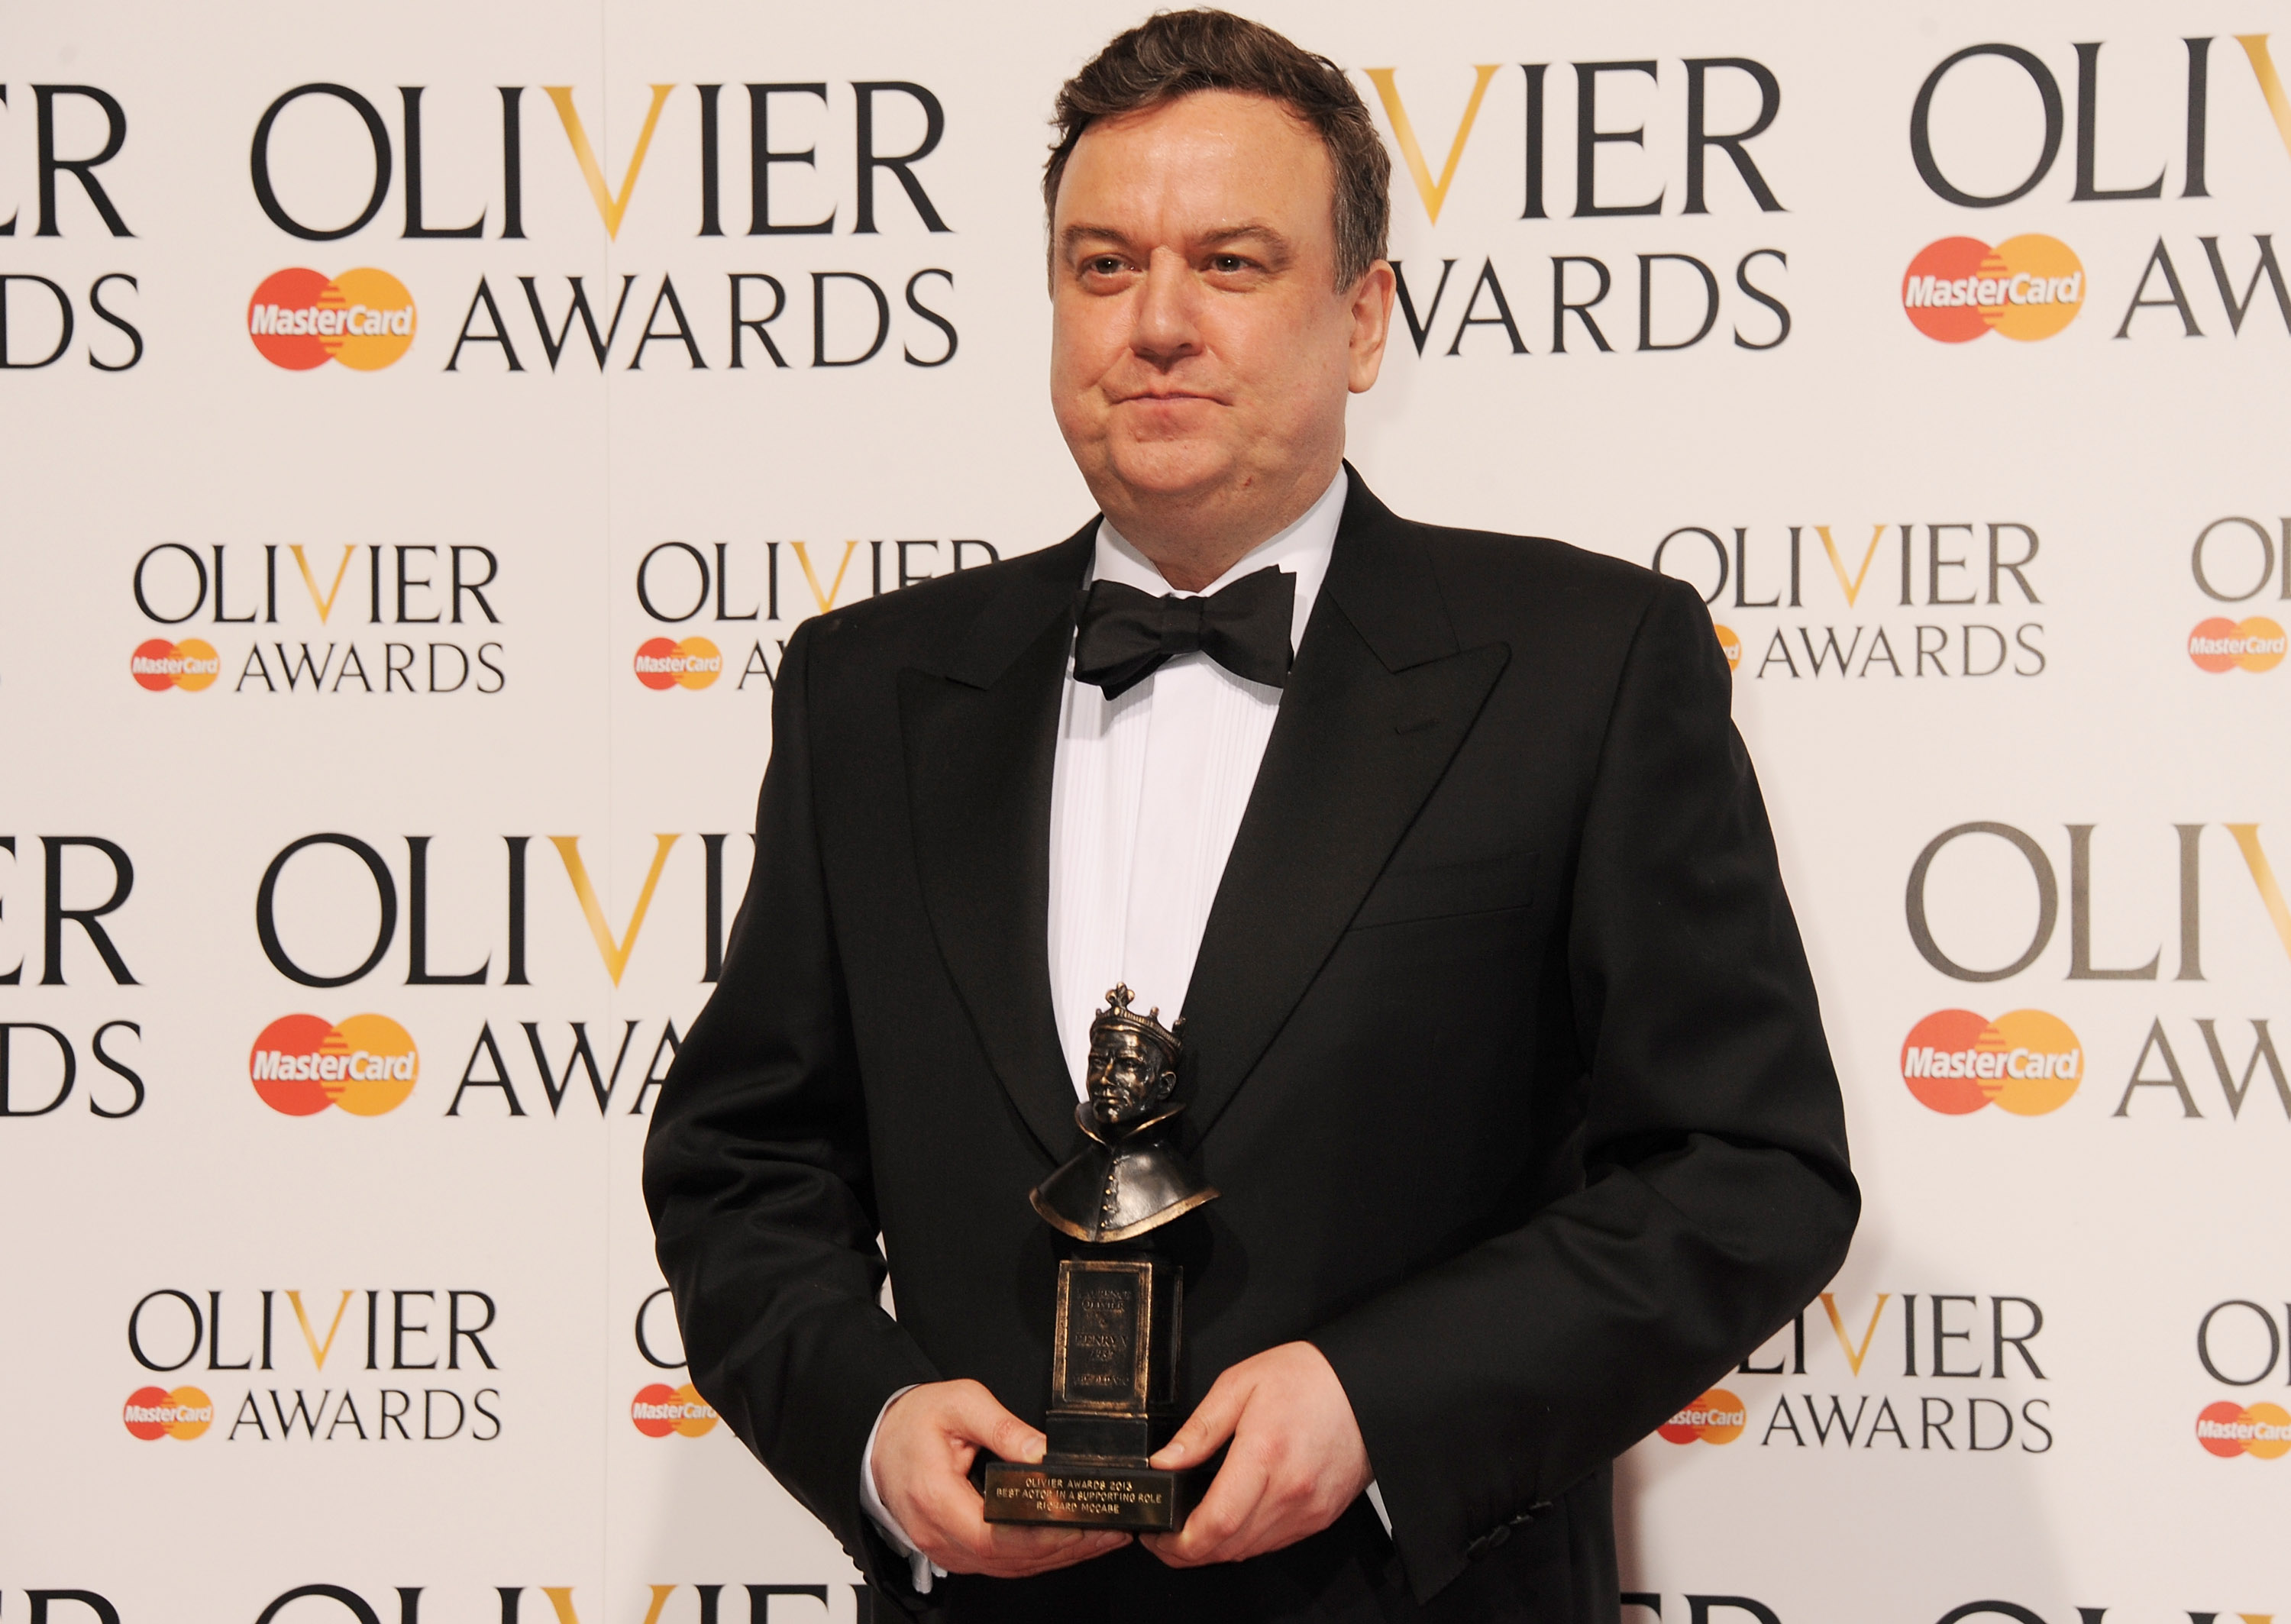 Richard McCabe, winner of Best Actor in a Supporting Role, poses in the press room at The Laurence Olivier Awards 2013 at The Royal Opera House on April 28, 2013 in London, England.